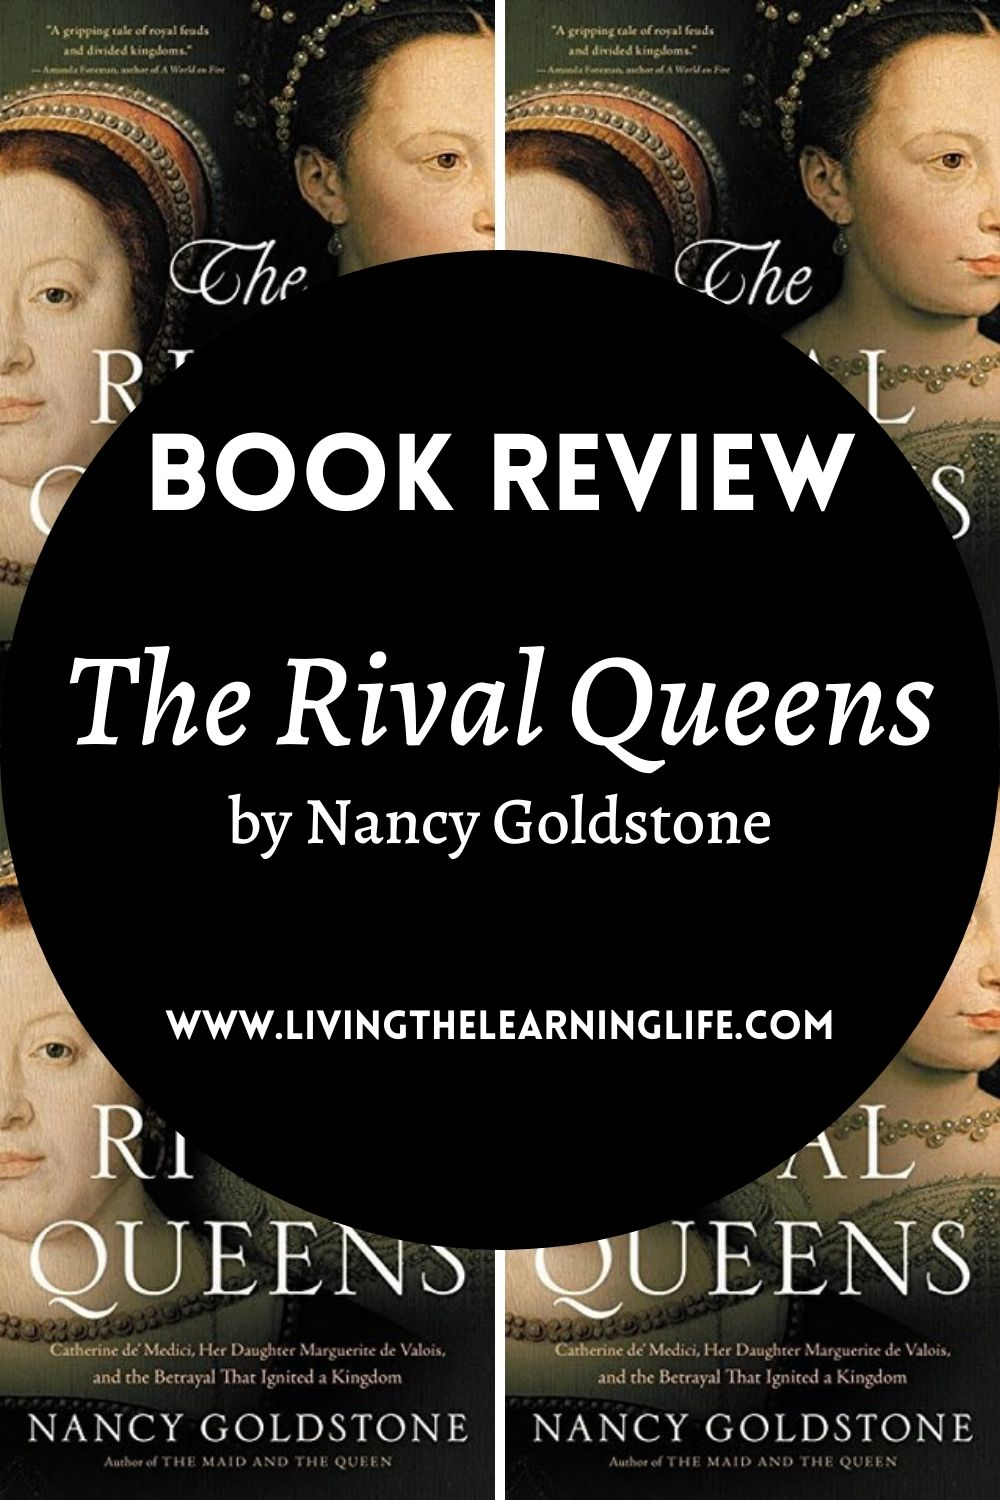 book review of the rival queens